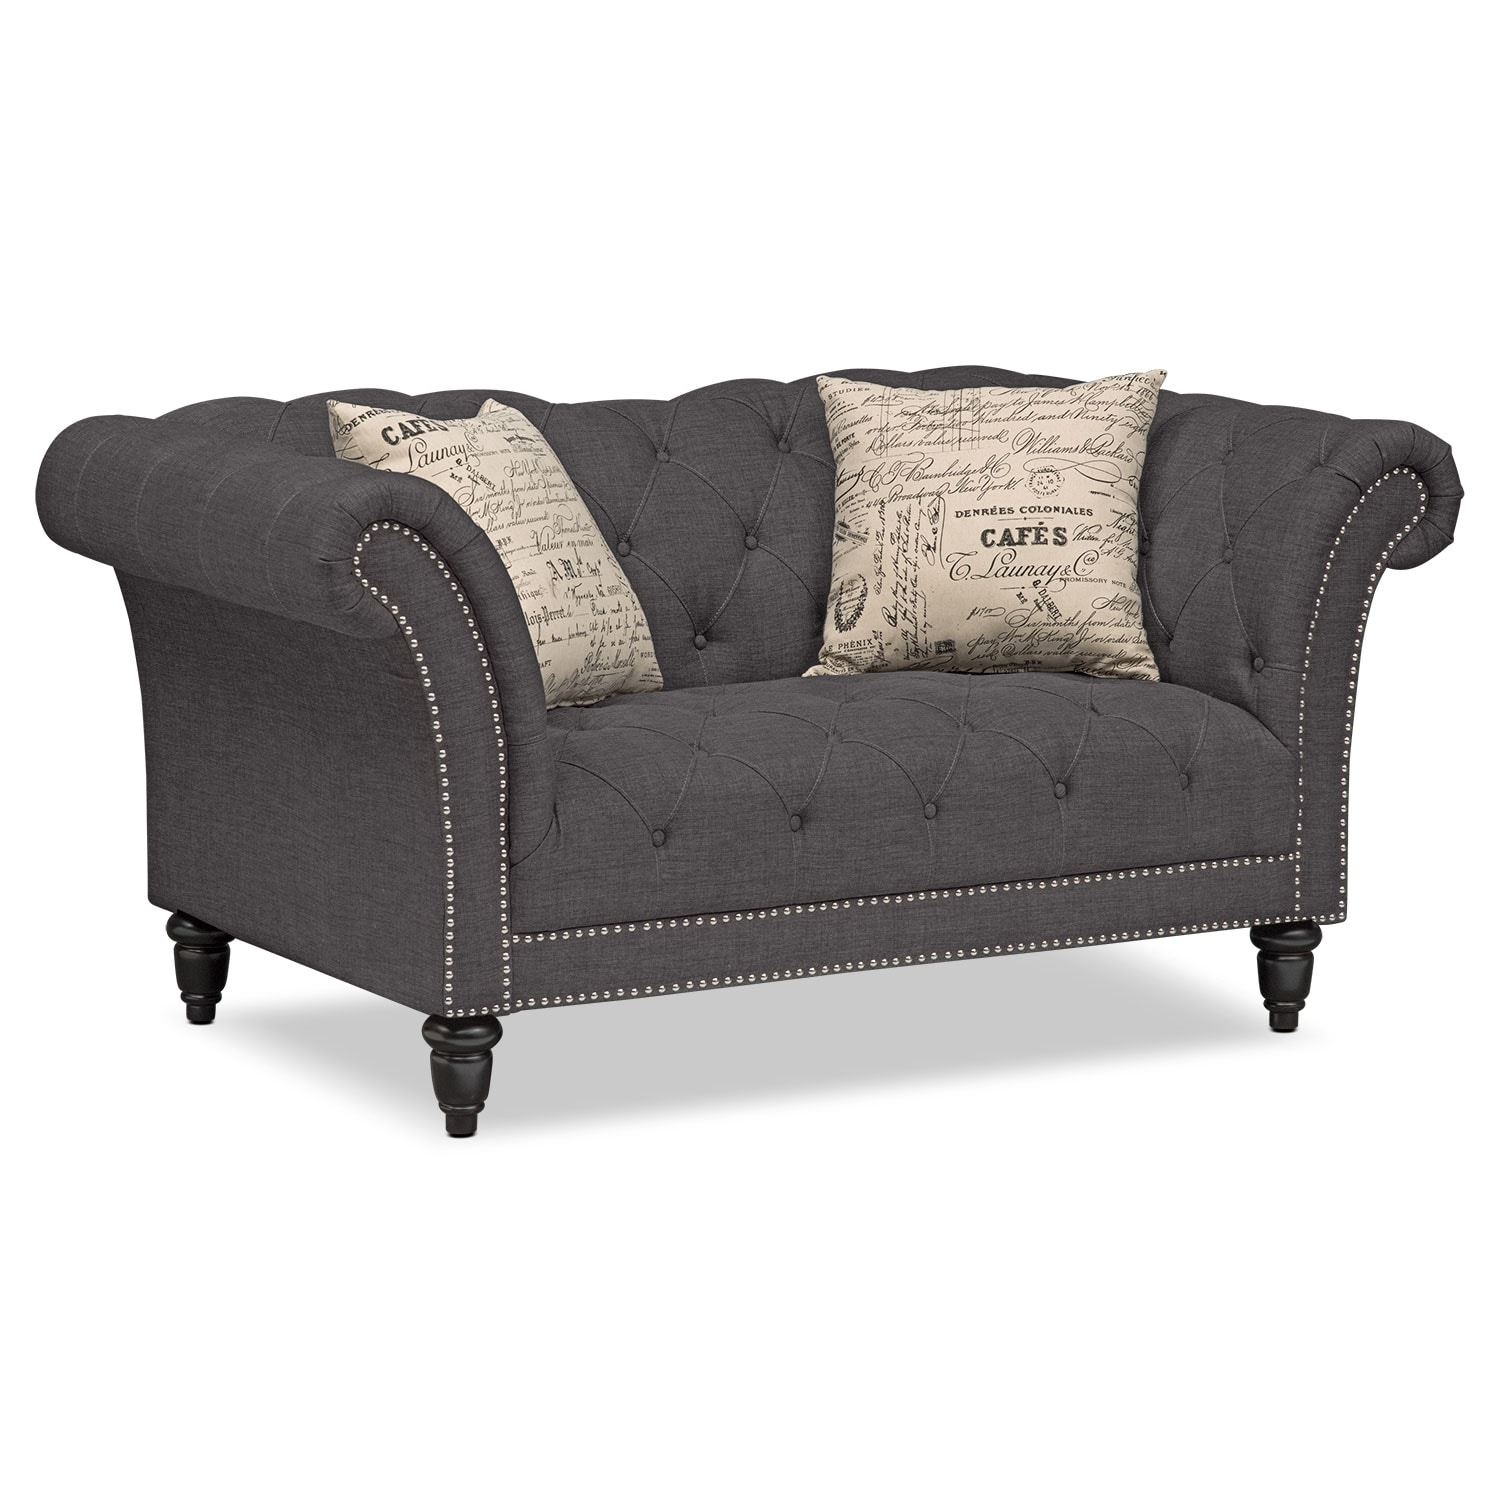 Marisol Sofa and Loveseat Set Charcoal